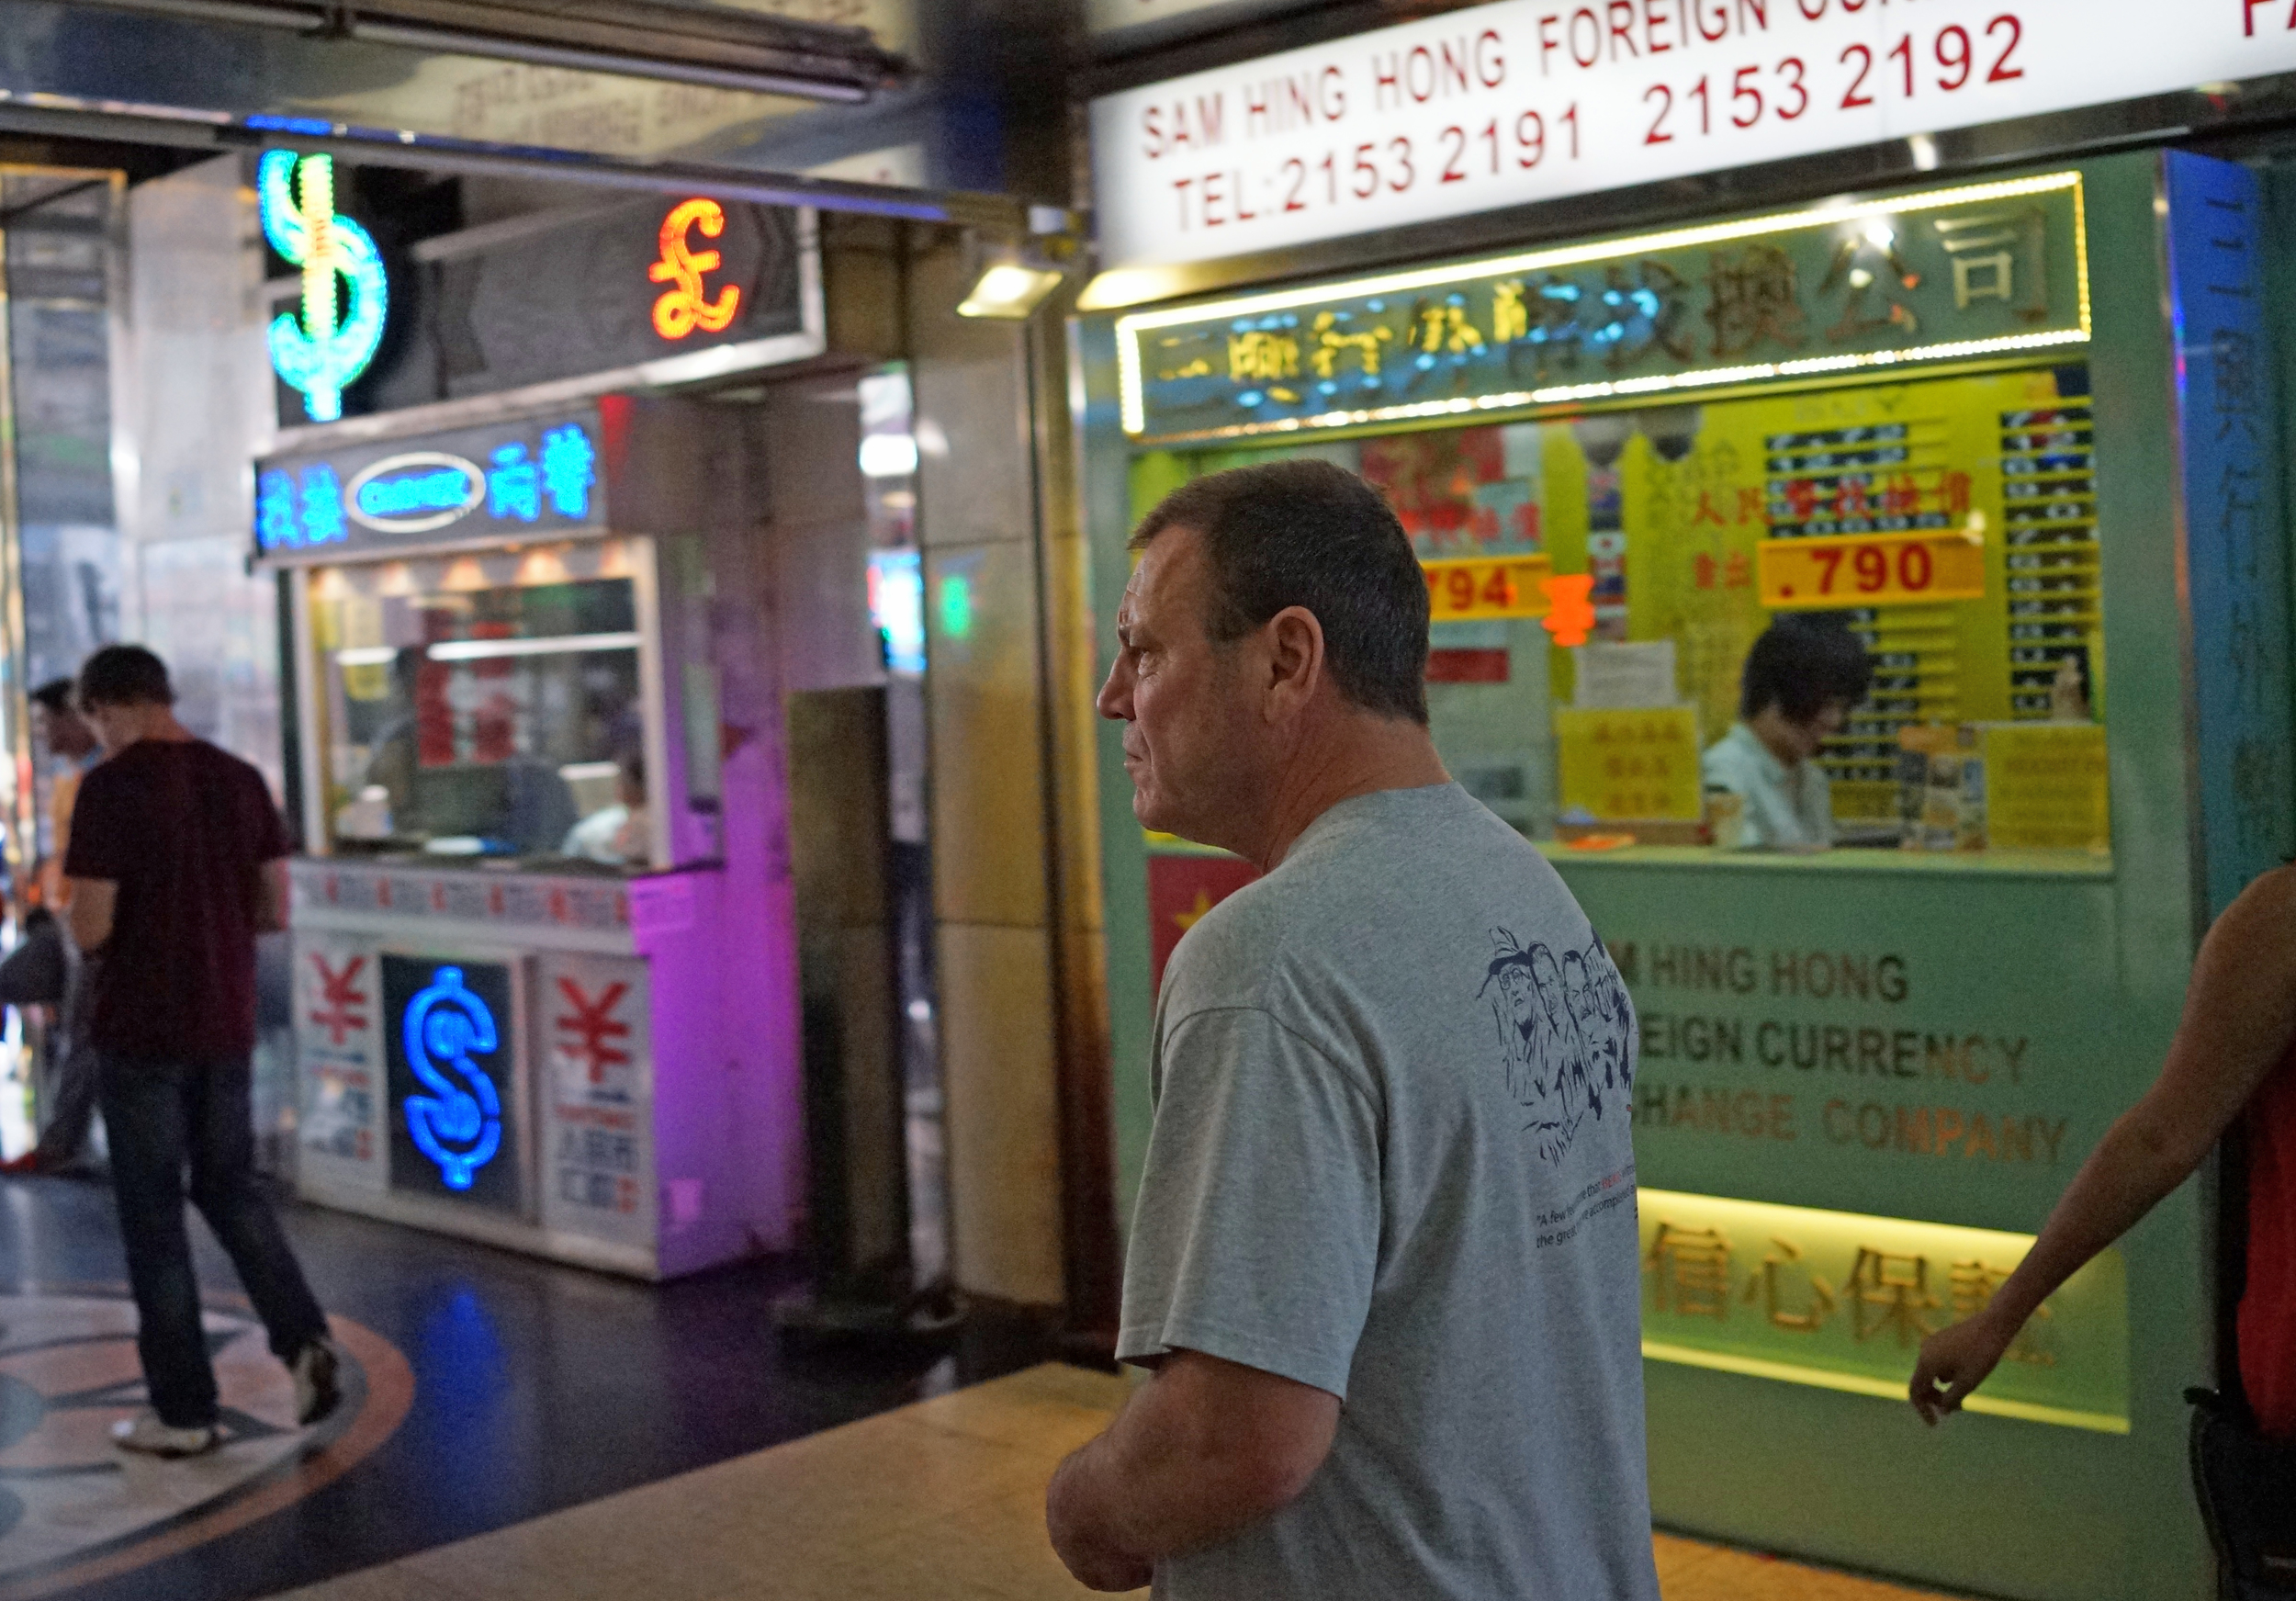 This chap was leaving Chungking Mansions which is perhaps Hong Kong's dodgiest building but it is however the best place in Hong Kong to change money.